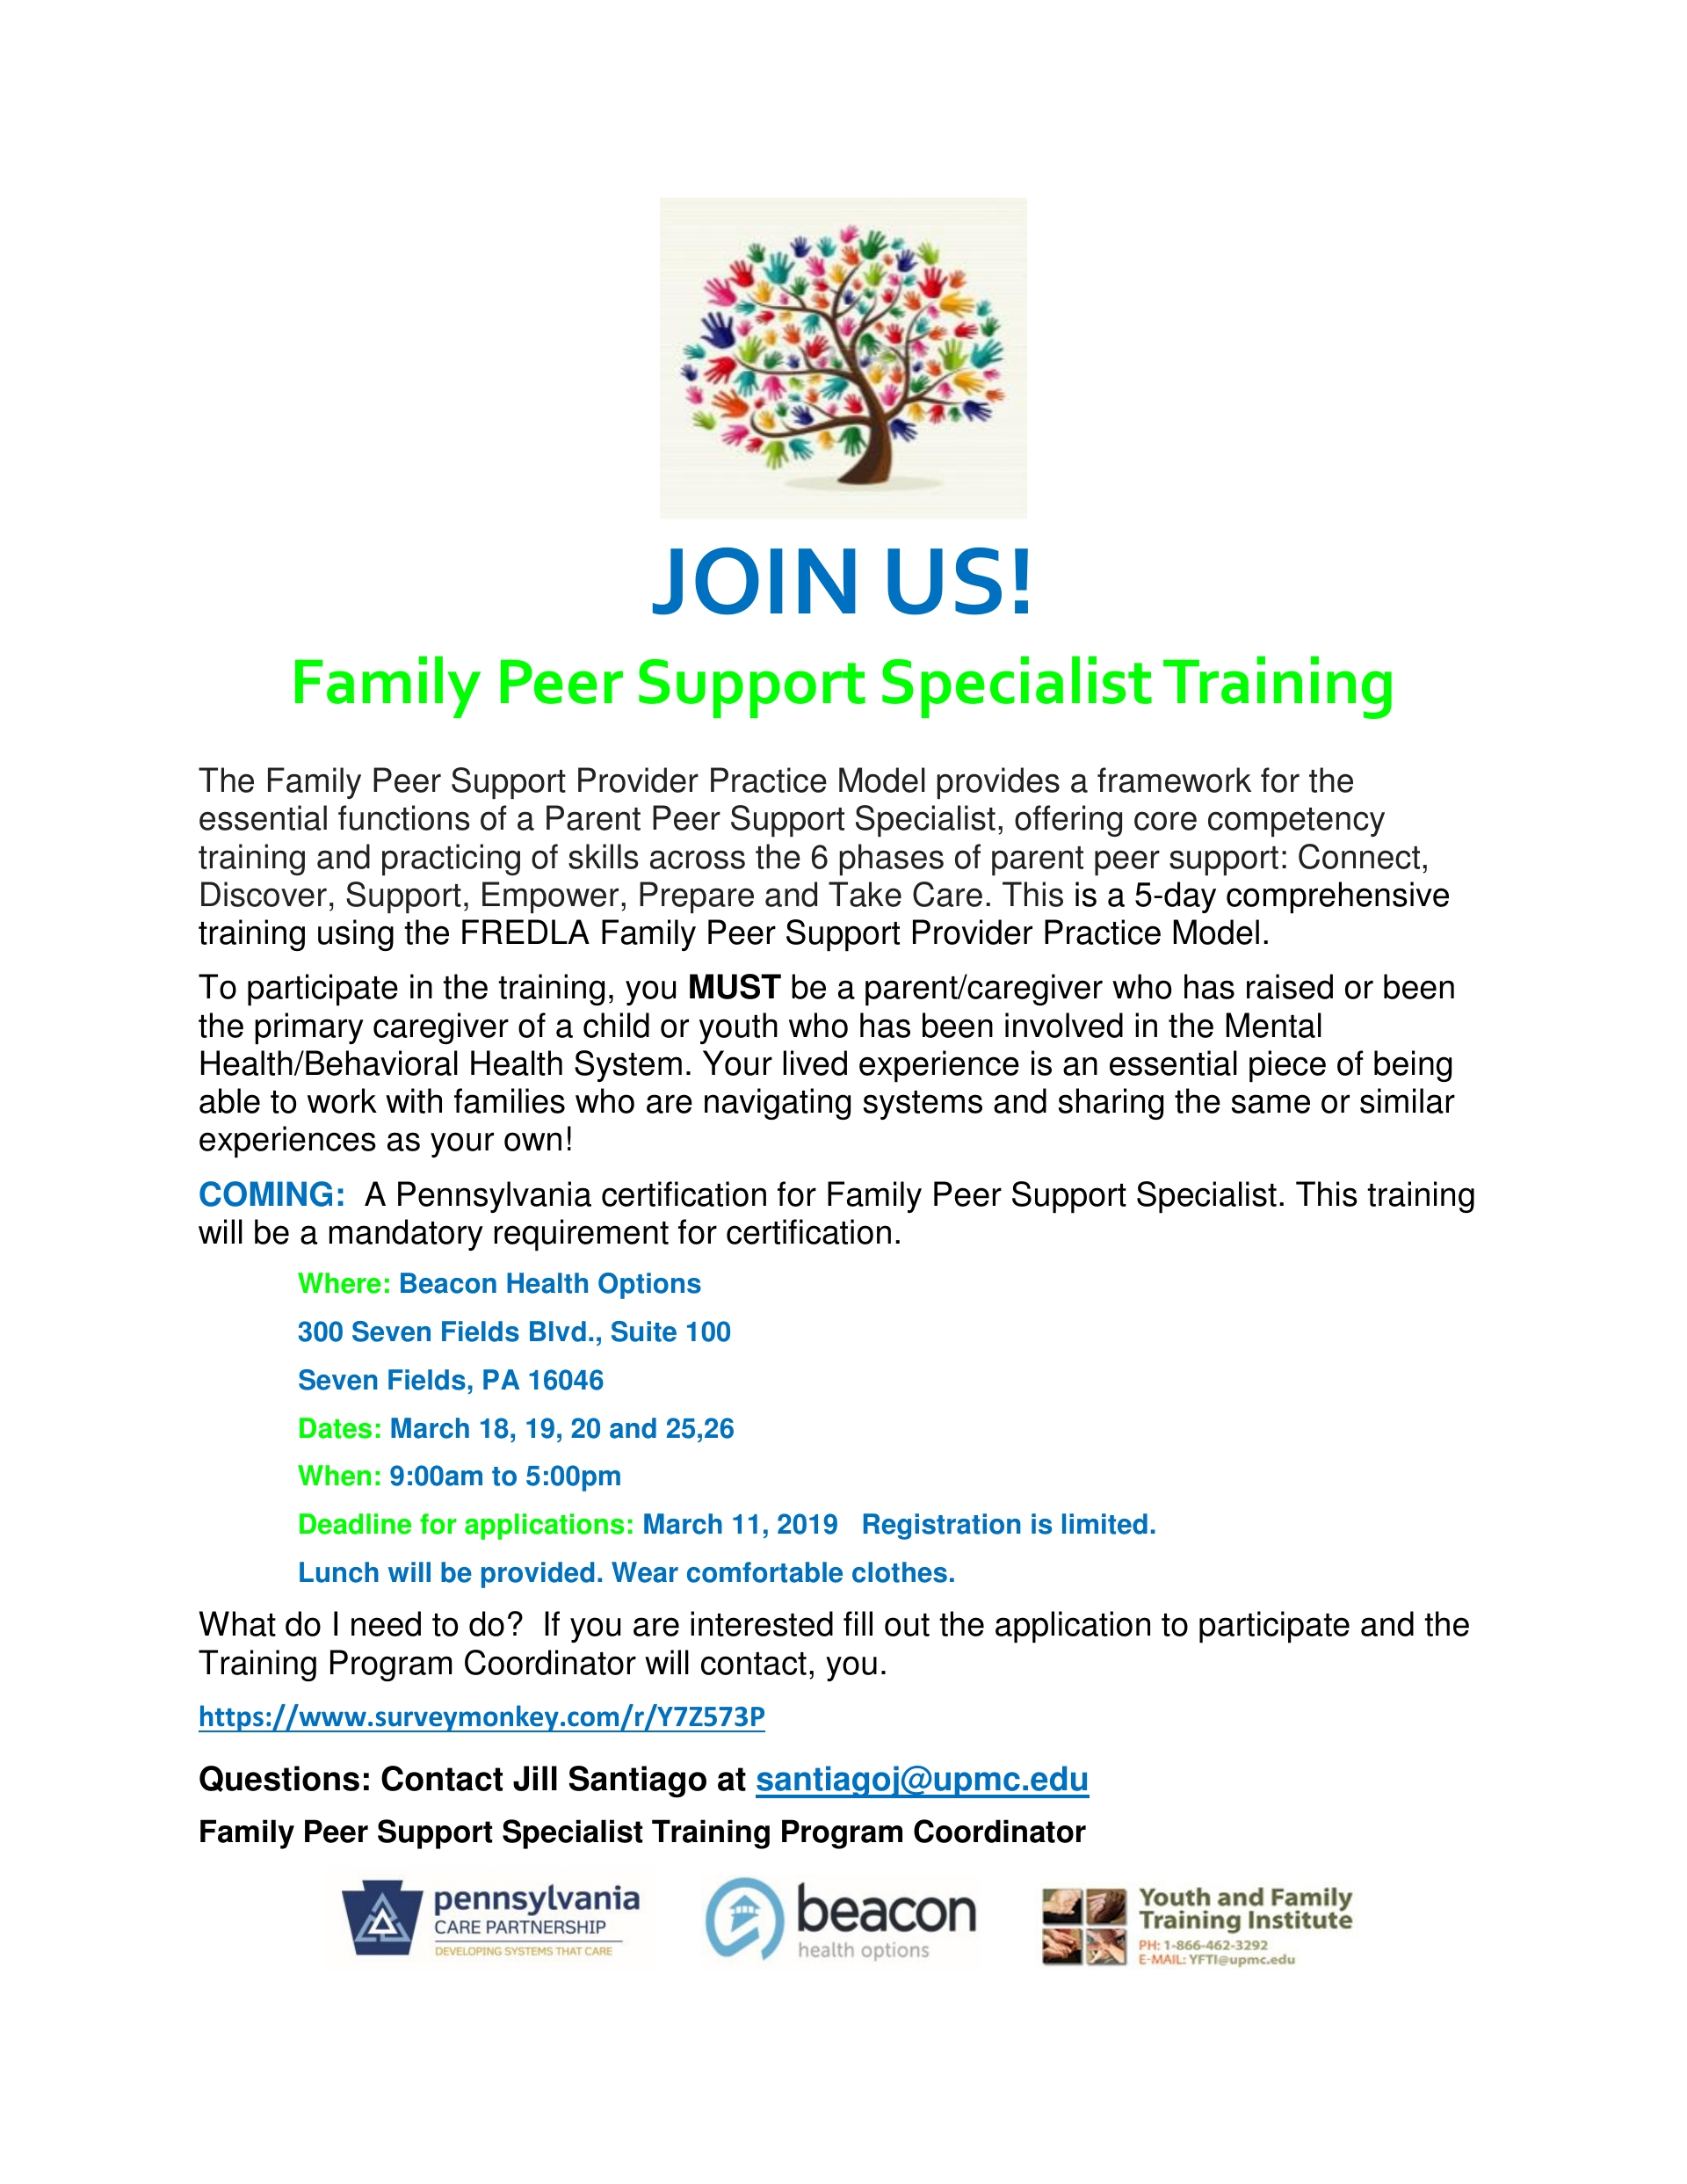 FREE FAMILY PEER SUPPORT SPECIALIST TRAINING